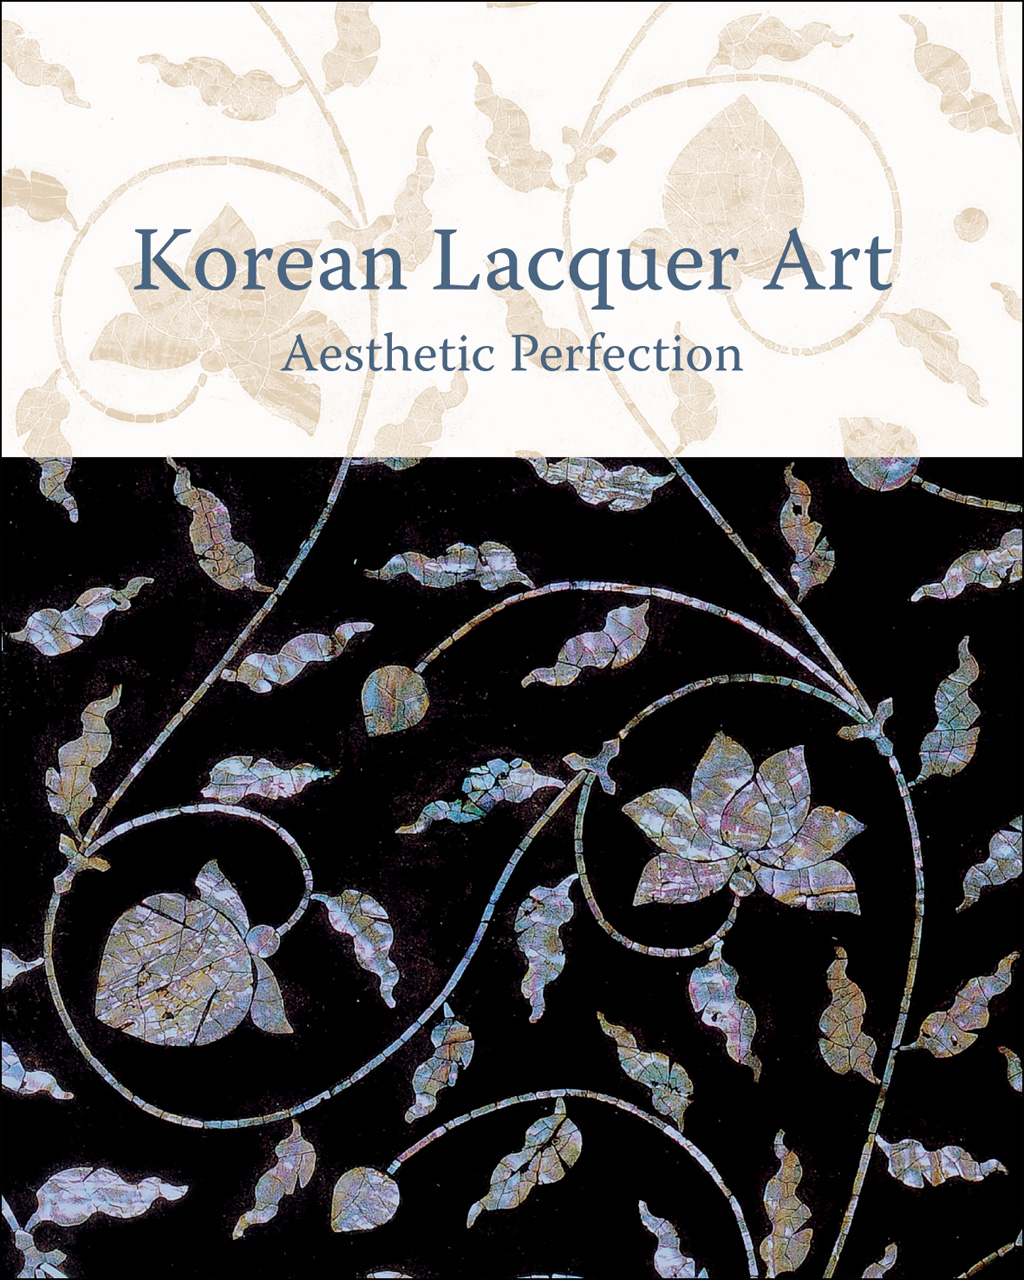 Korean Lacquer Art: Aesthetic Perfection